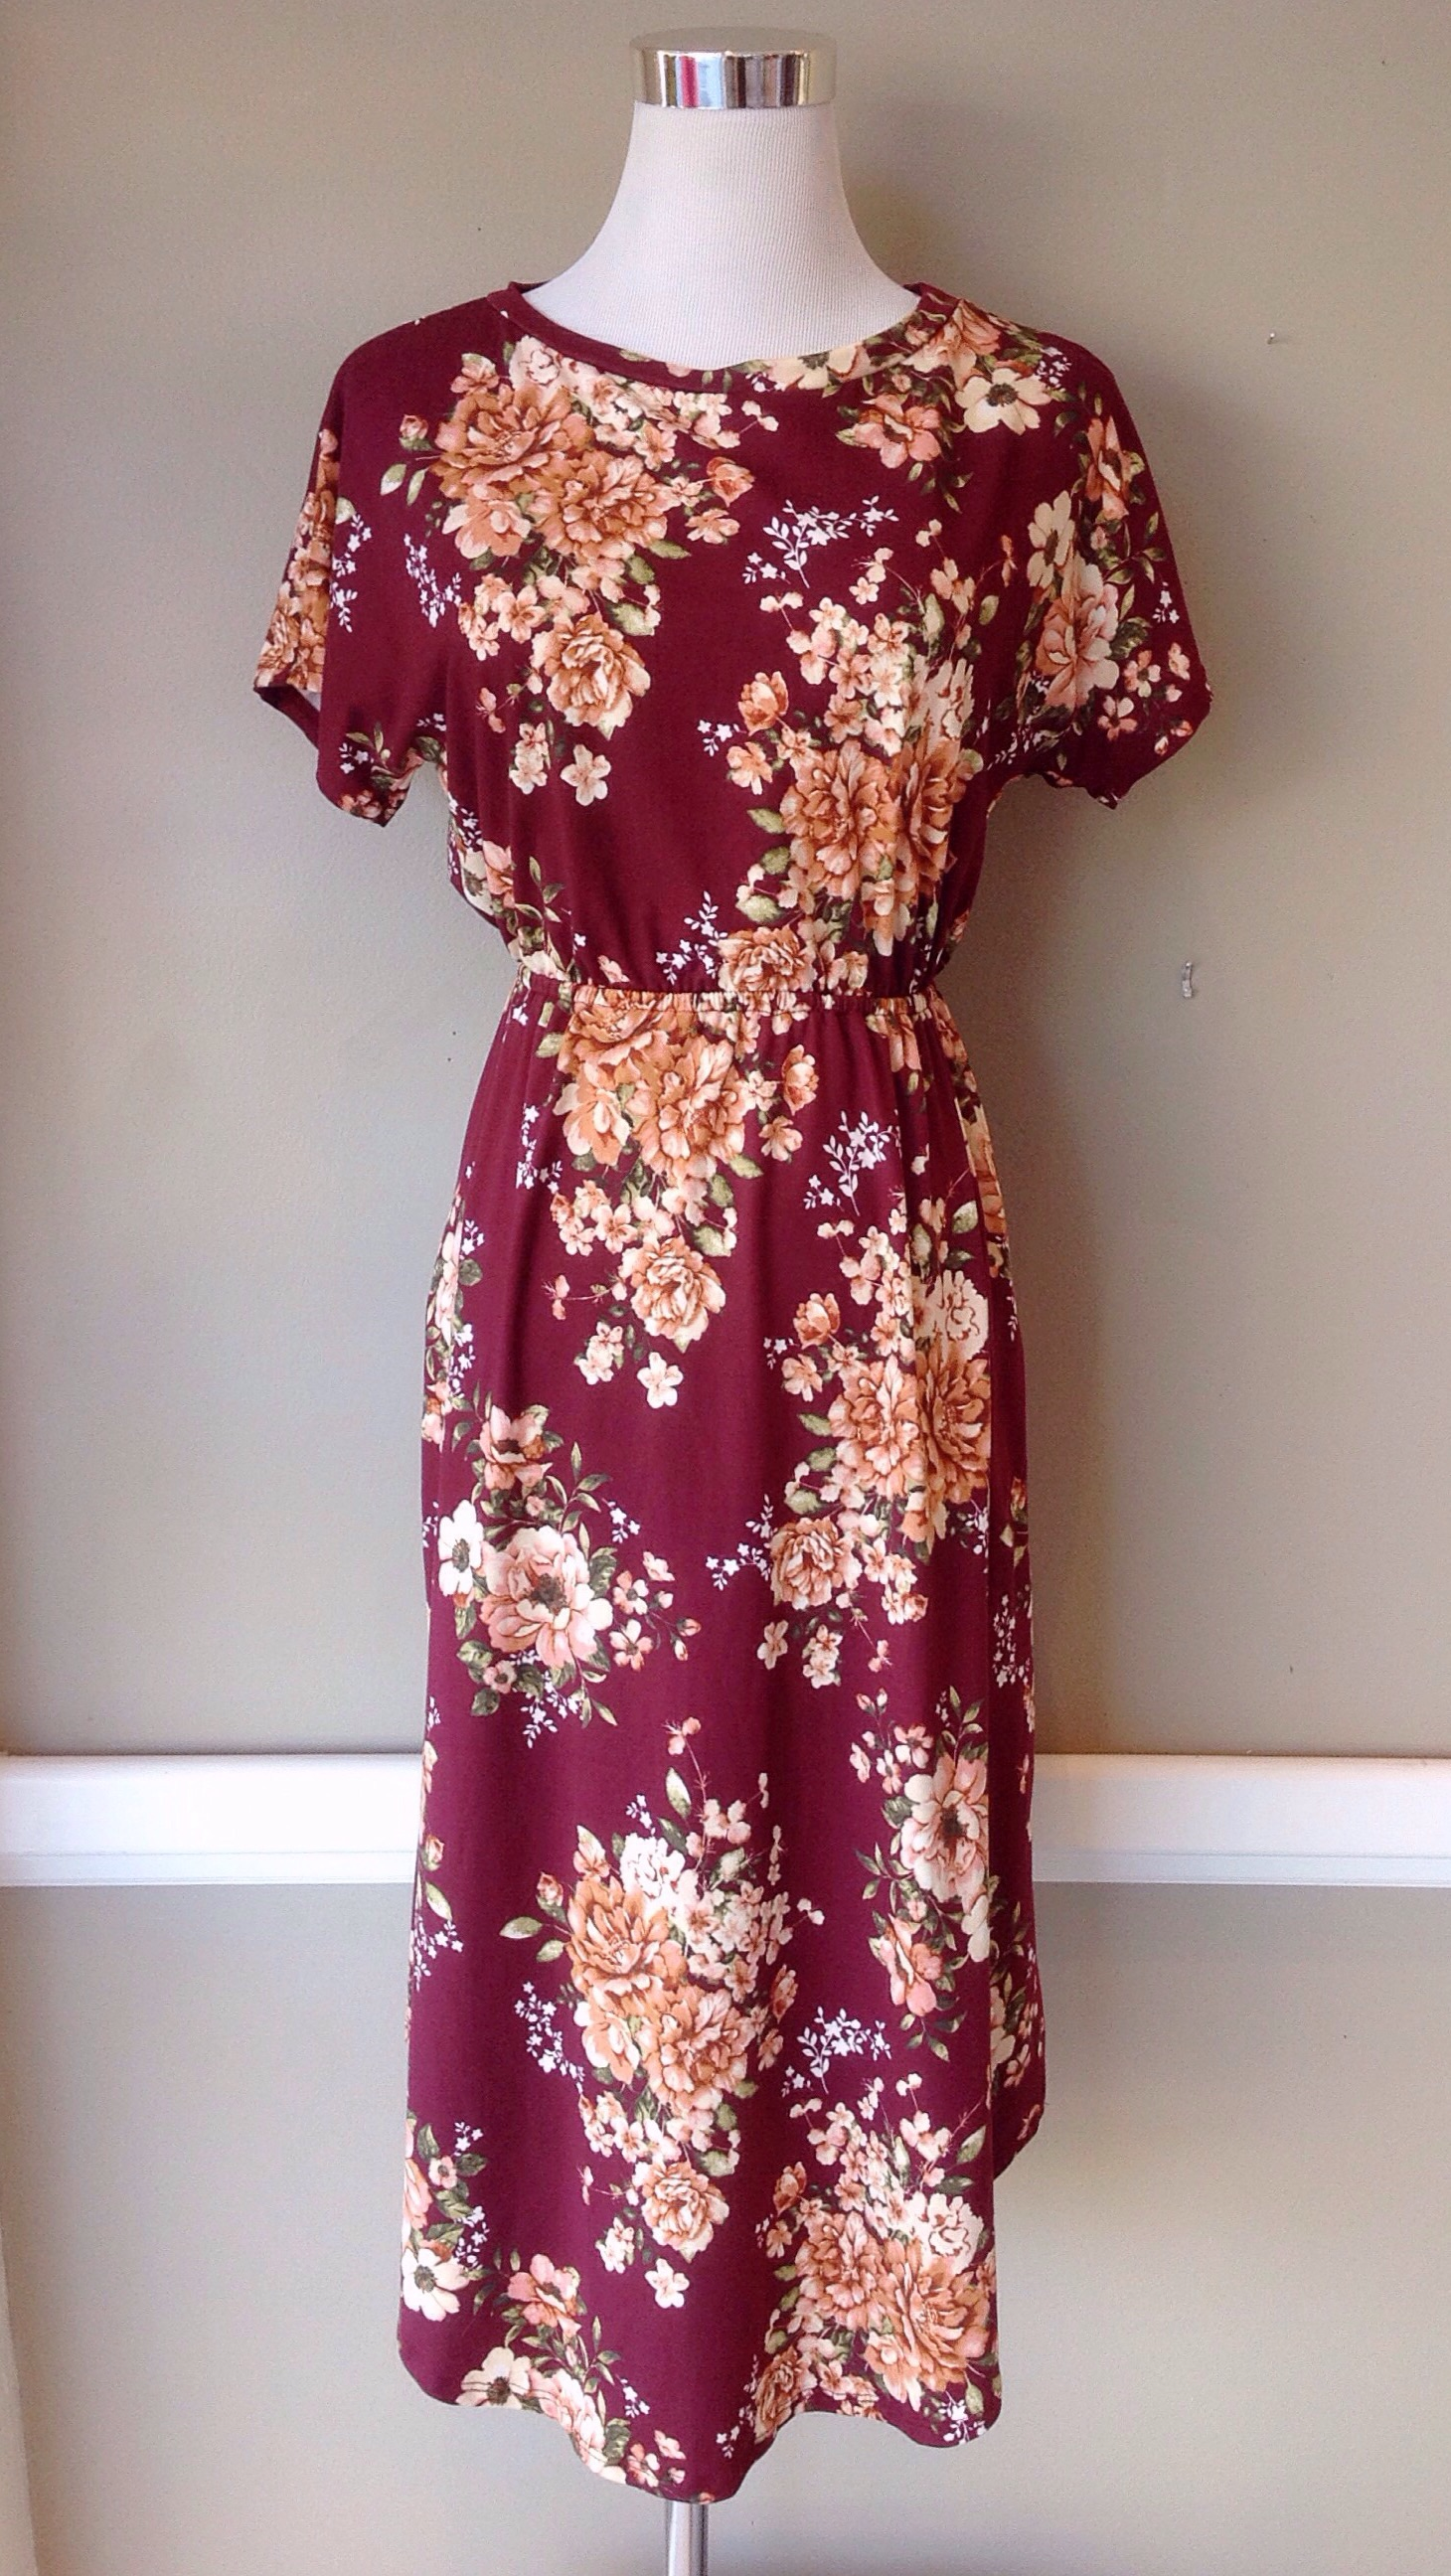 Soft floral midi dress with gathered waist in burgundy, $38